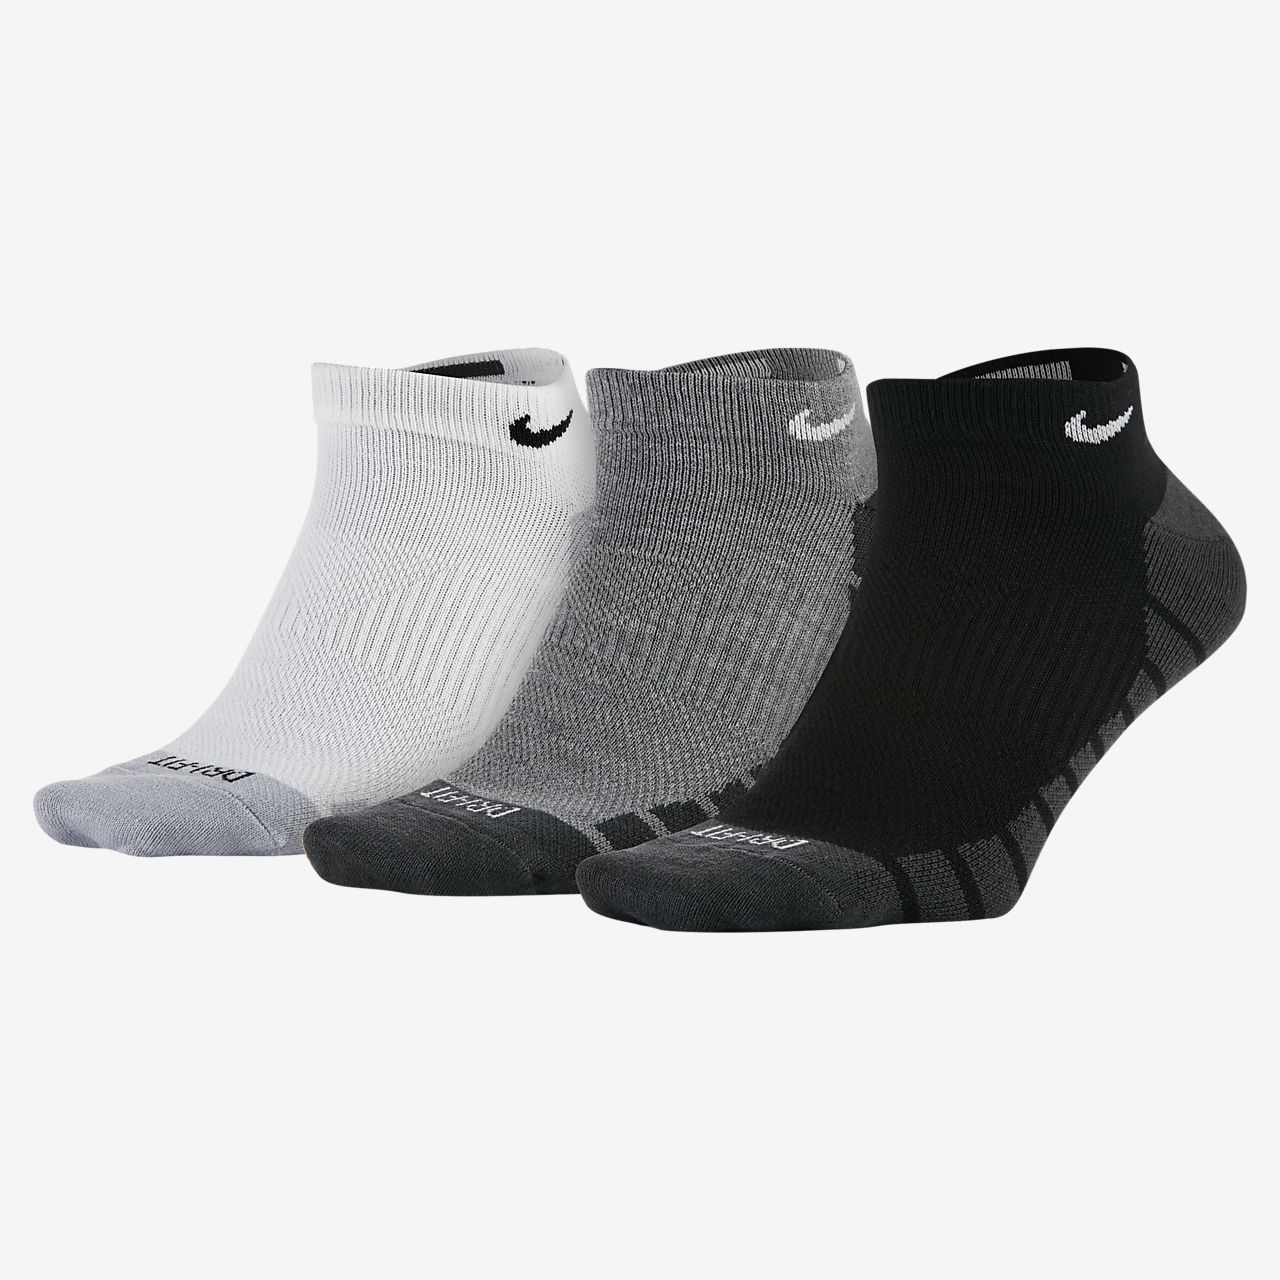 Nike Dry Lightweight No-Show Trainingssocken (3 Paar)